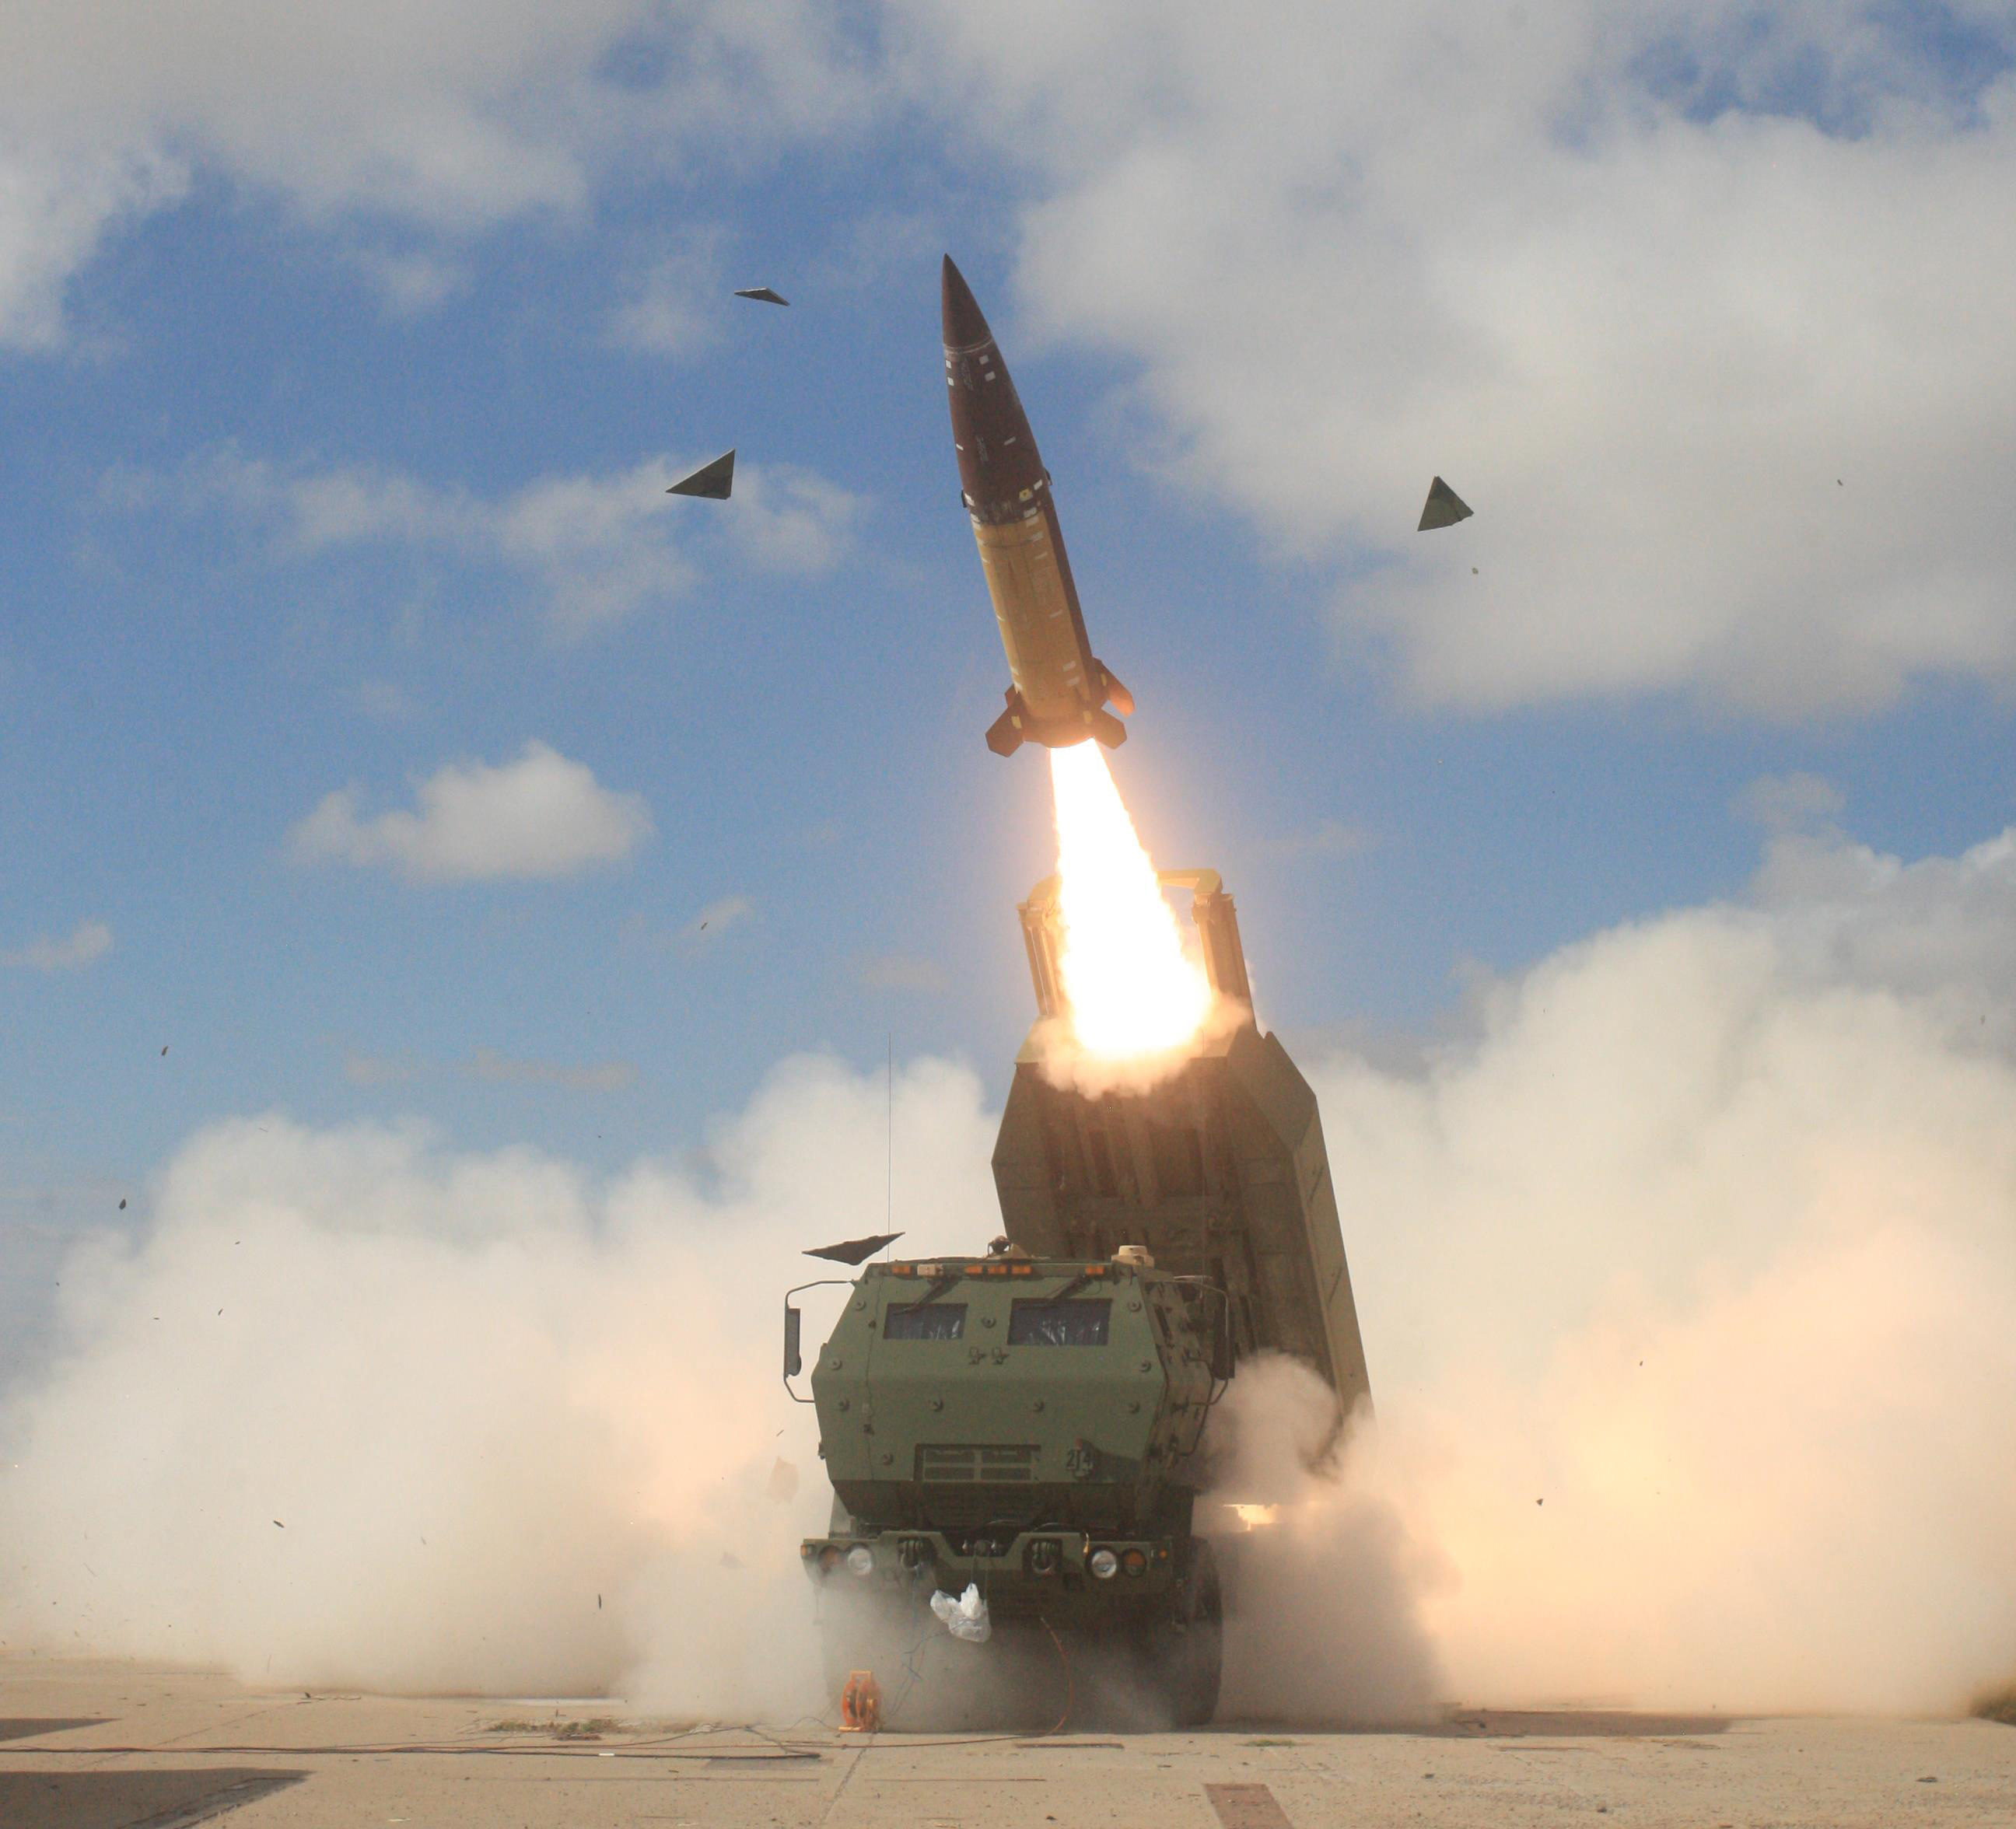 The Arkansas Army National Guard's 1st Battalion, 142nd Field Artillery team fires an ATACMS at White Sands Missile Range in July 2015. The system saw combat service in the Persian Gulf War, Iraq and Afghanistan and is still in production. (Photo courtesy of Arkansas Army National Guard)